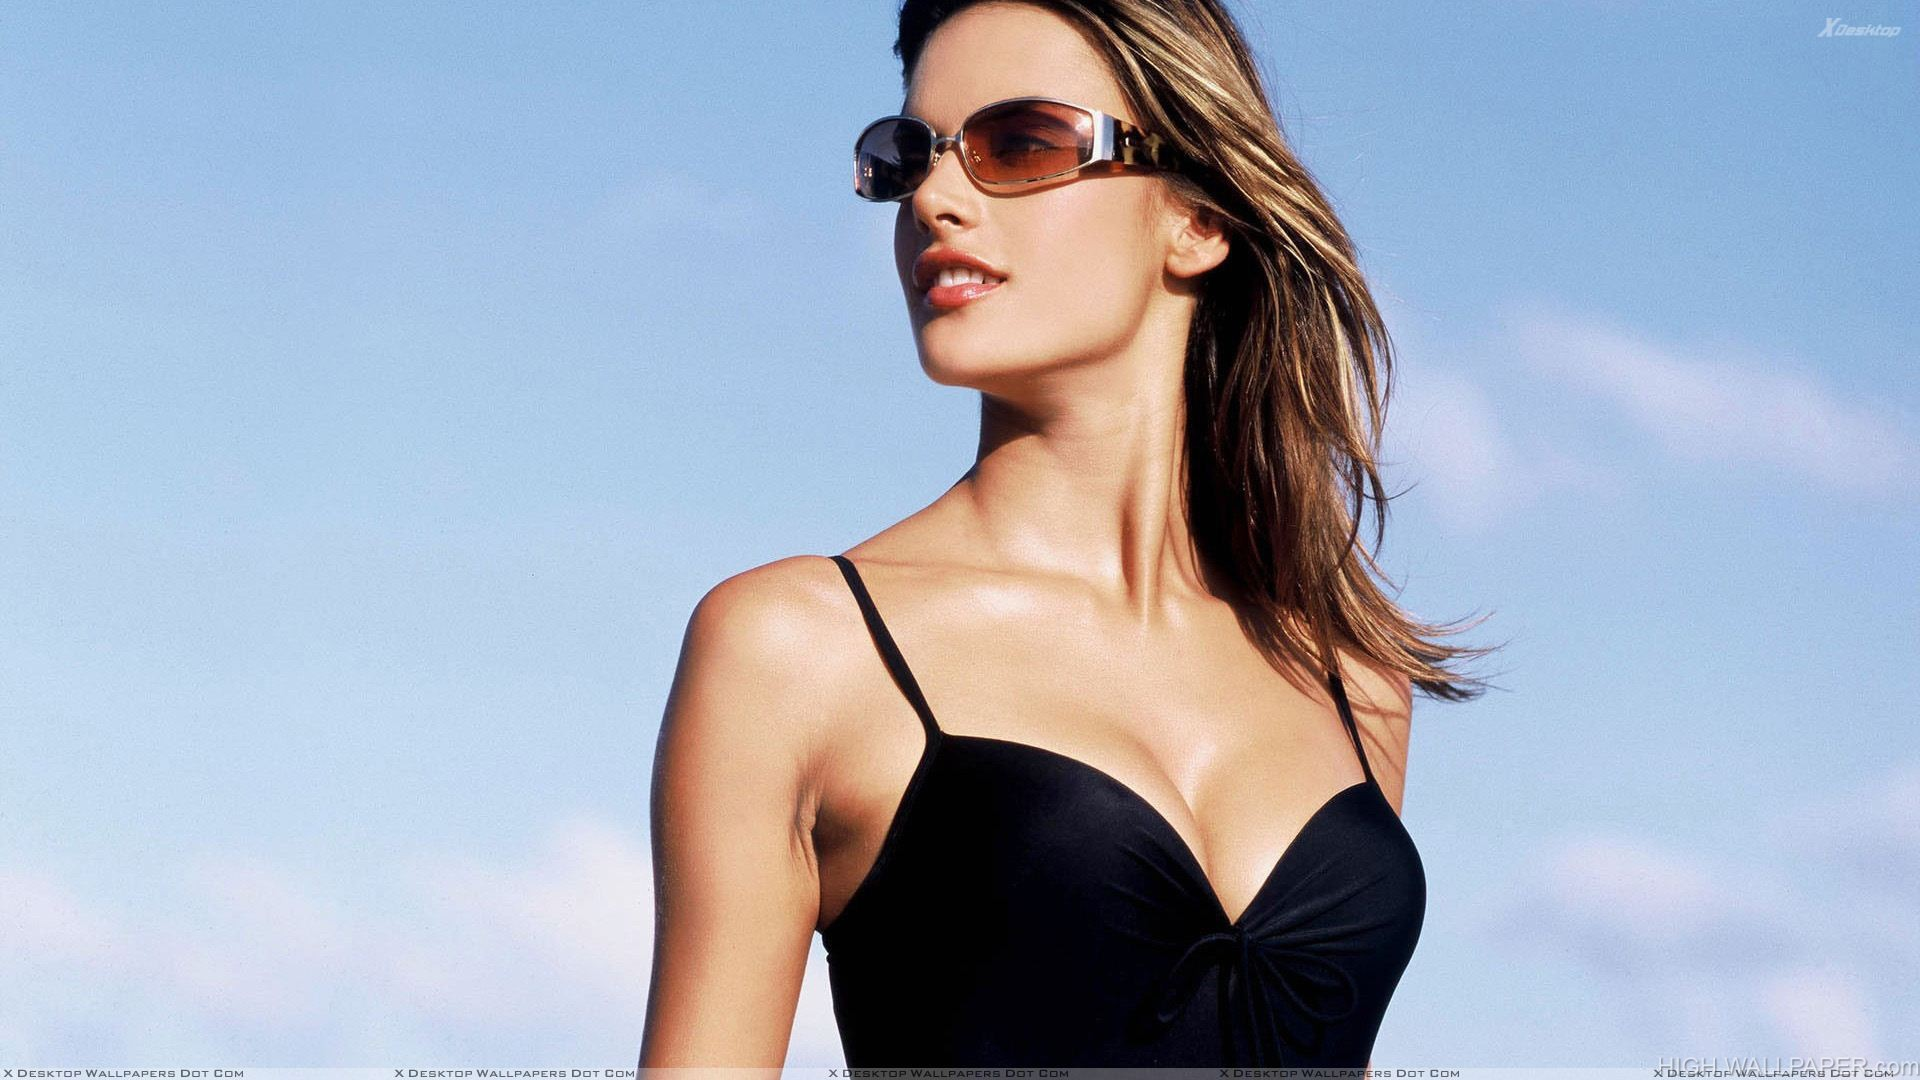 Alessandra Ambrosio Smiling Red Lips In Black Dress Side Pose